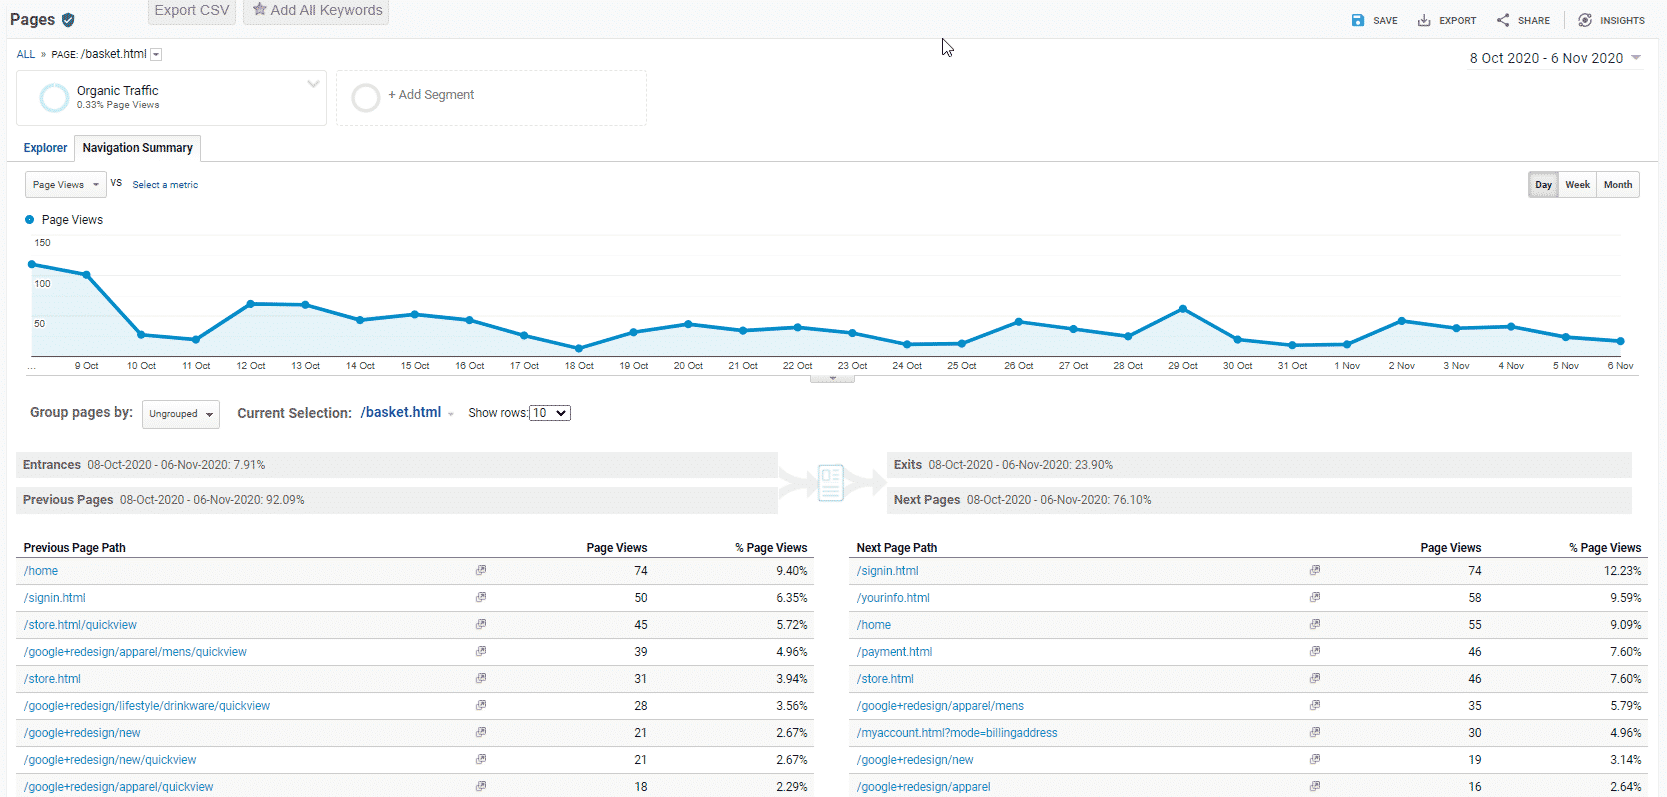 Overview image showing the organic traffic along with previous and next pages for page views in Google Analytics